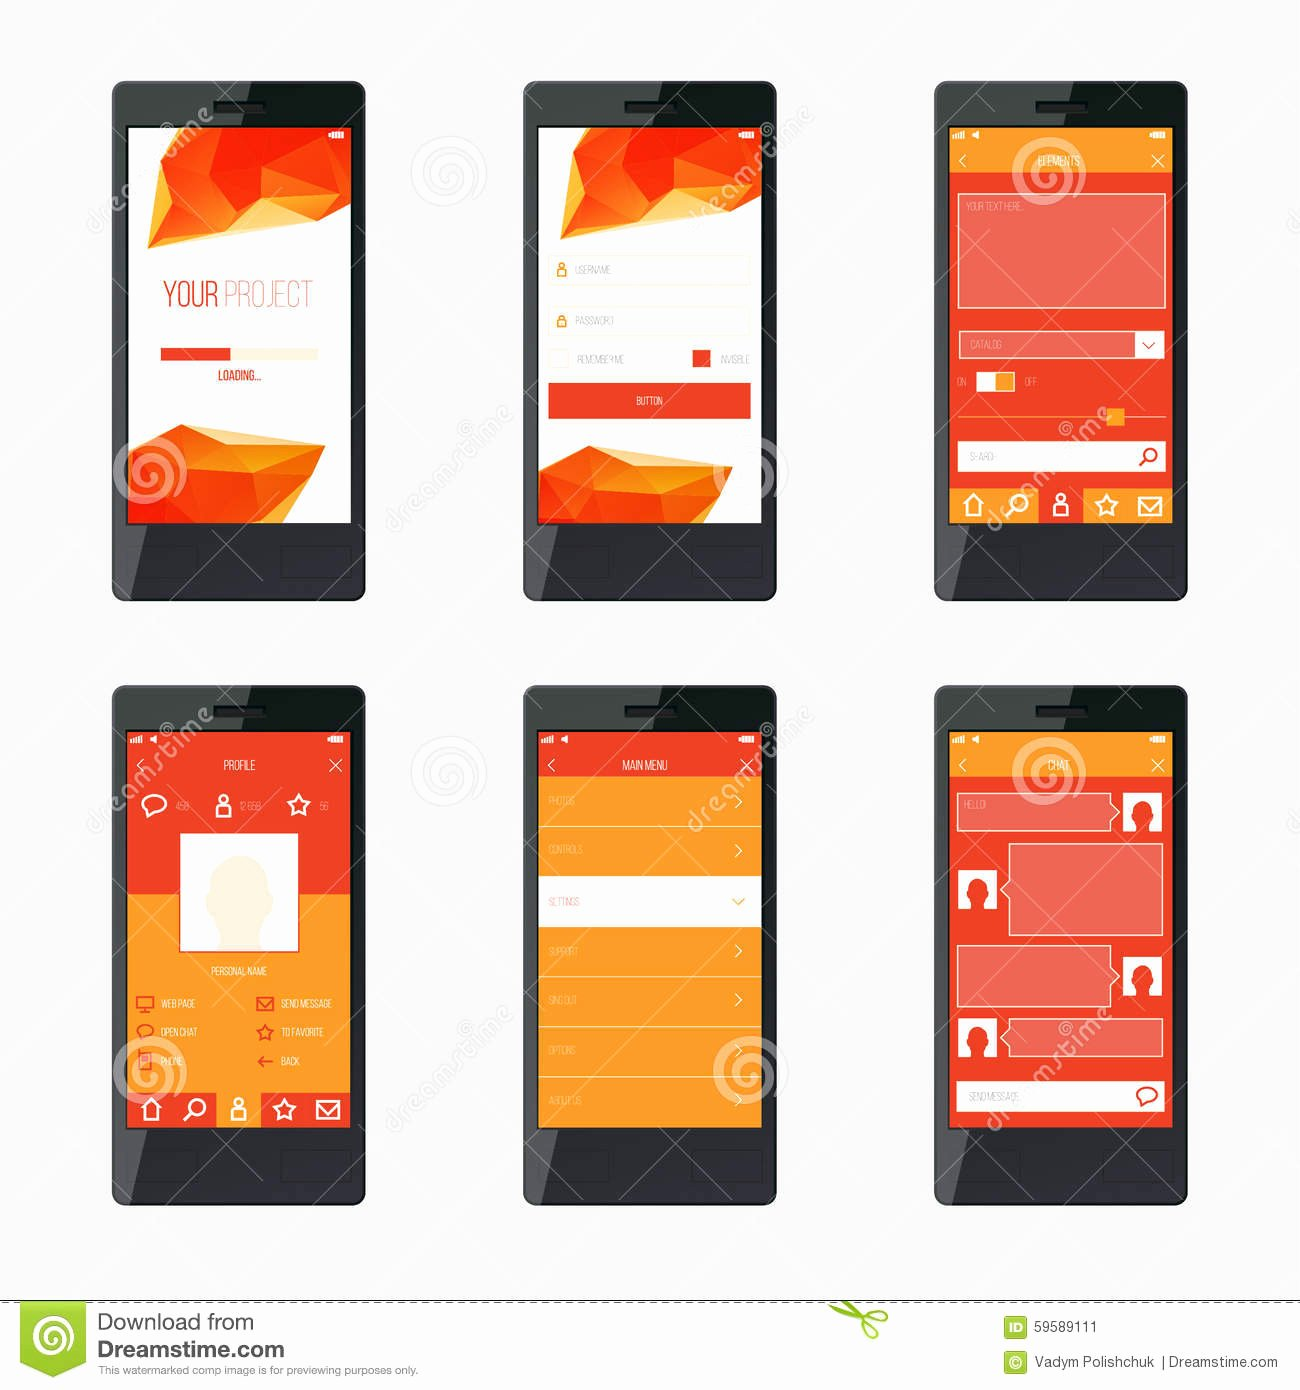 Mobile Apps Design Template Lovely Template Mobile Application Interface Design Stock Vector